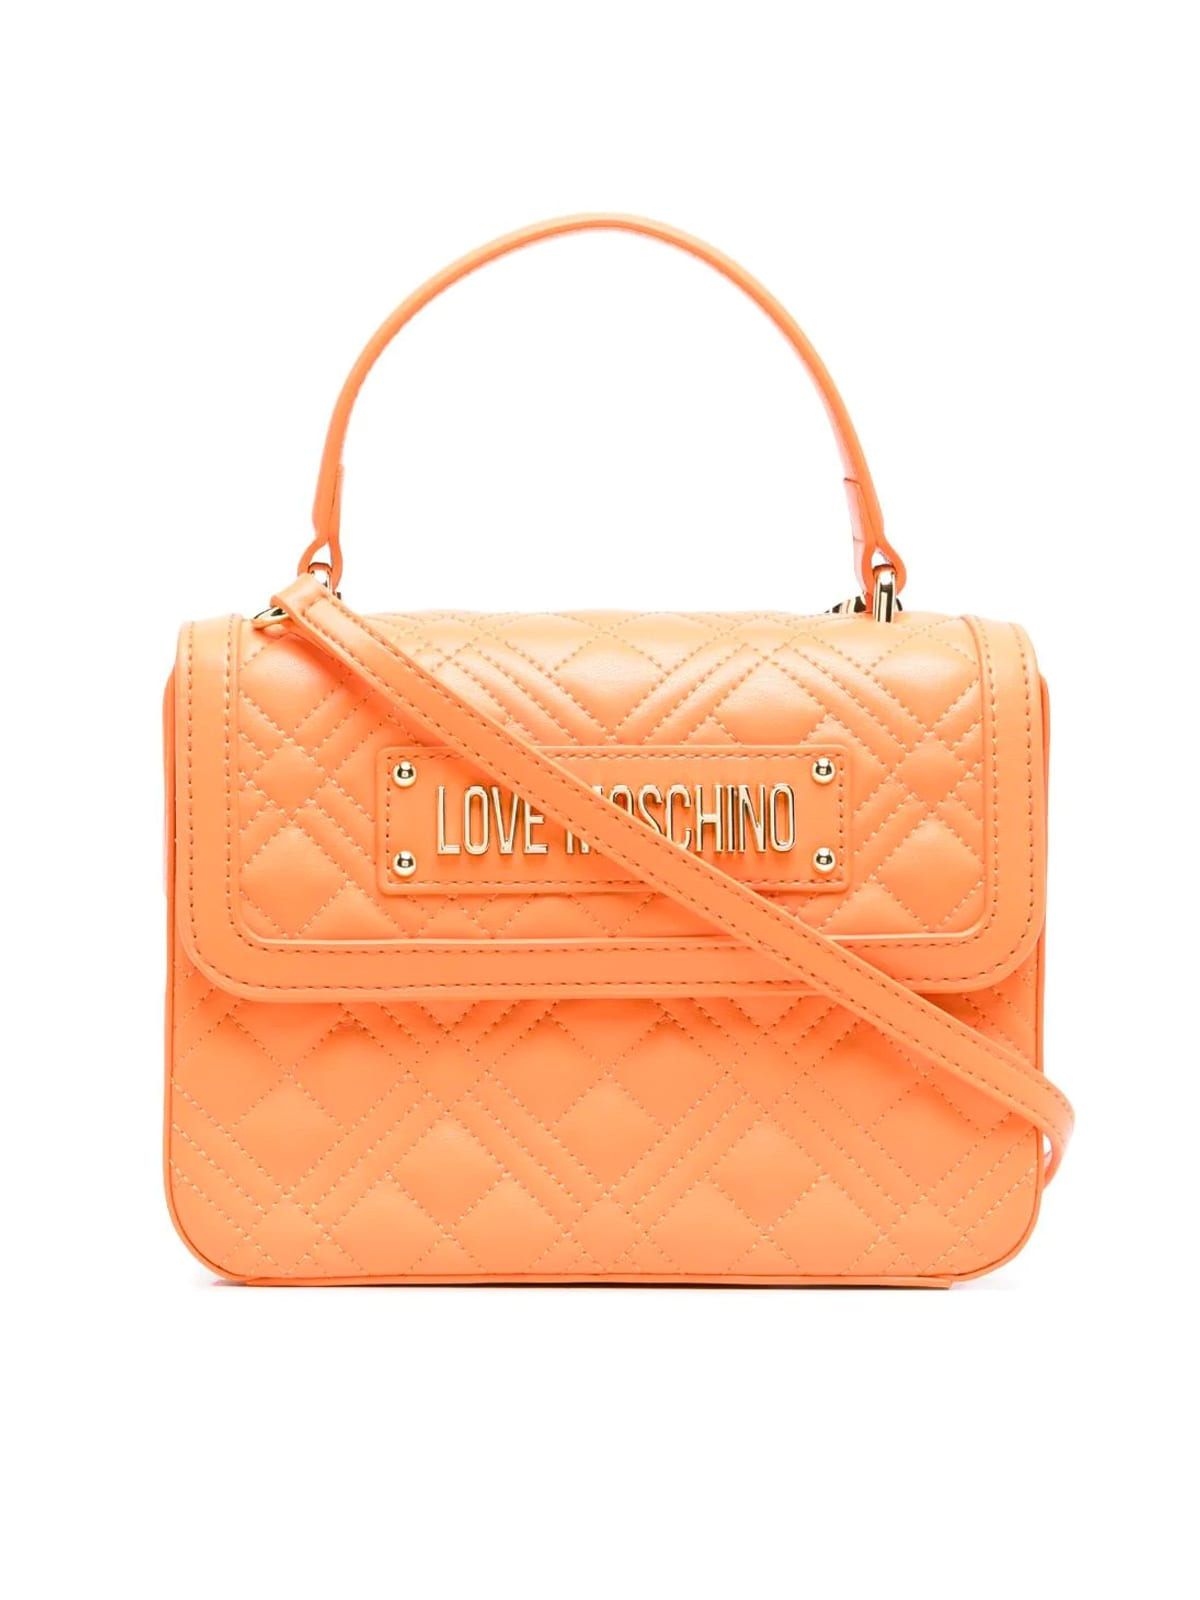 Love Moschino Handbags EVENING BAGS QUILTED TOP HANDLE BAG